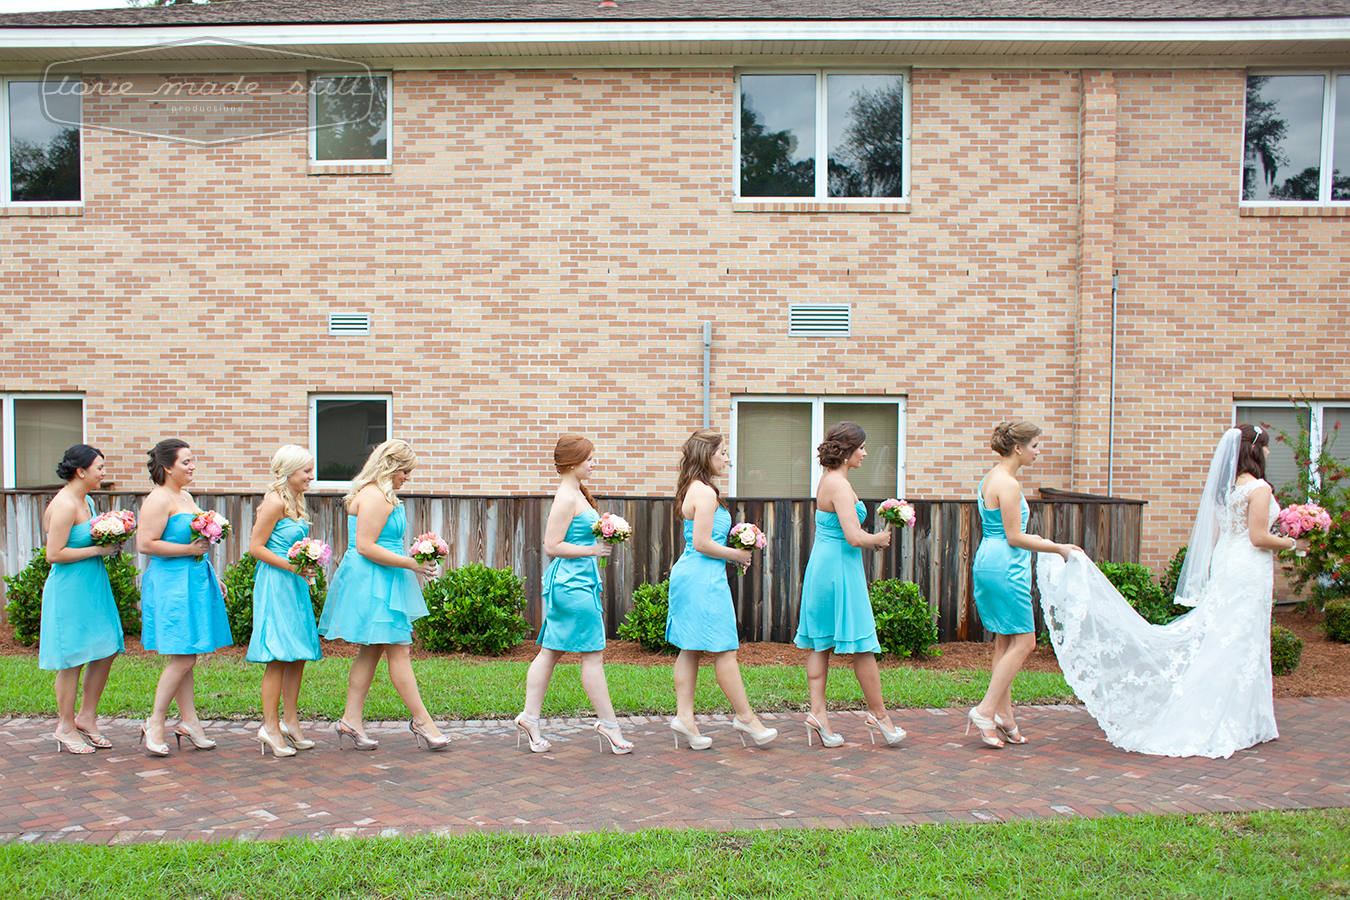 Bride enters the church in single file with bridesmaides